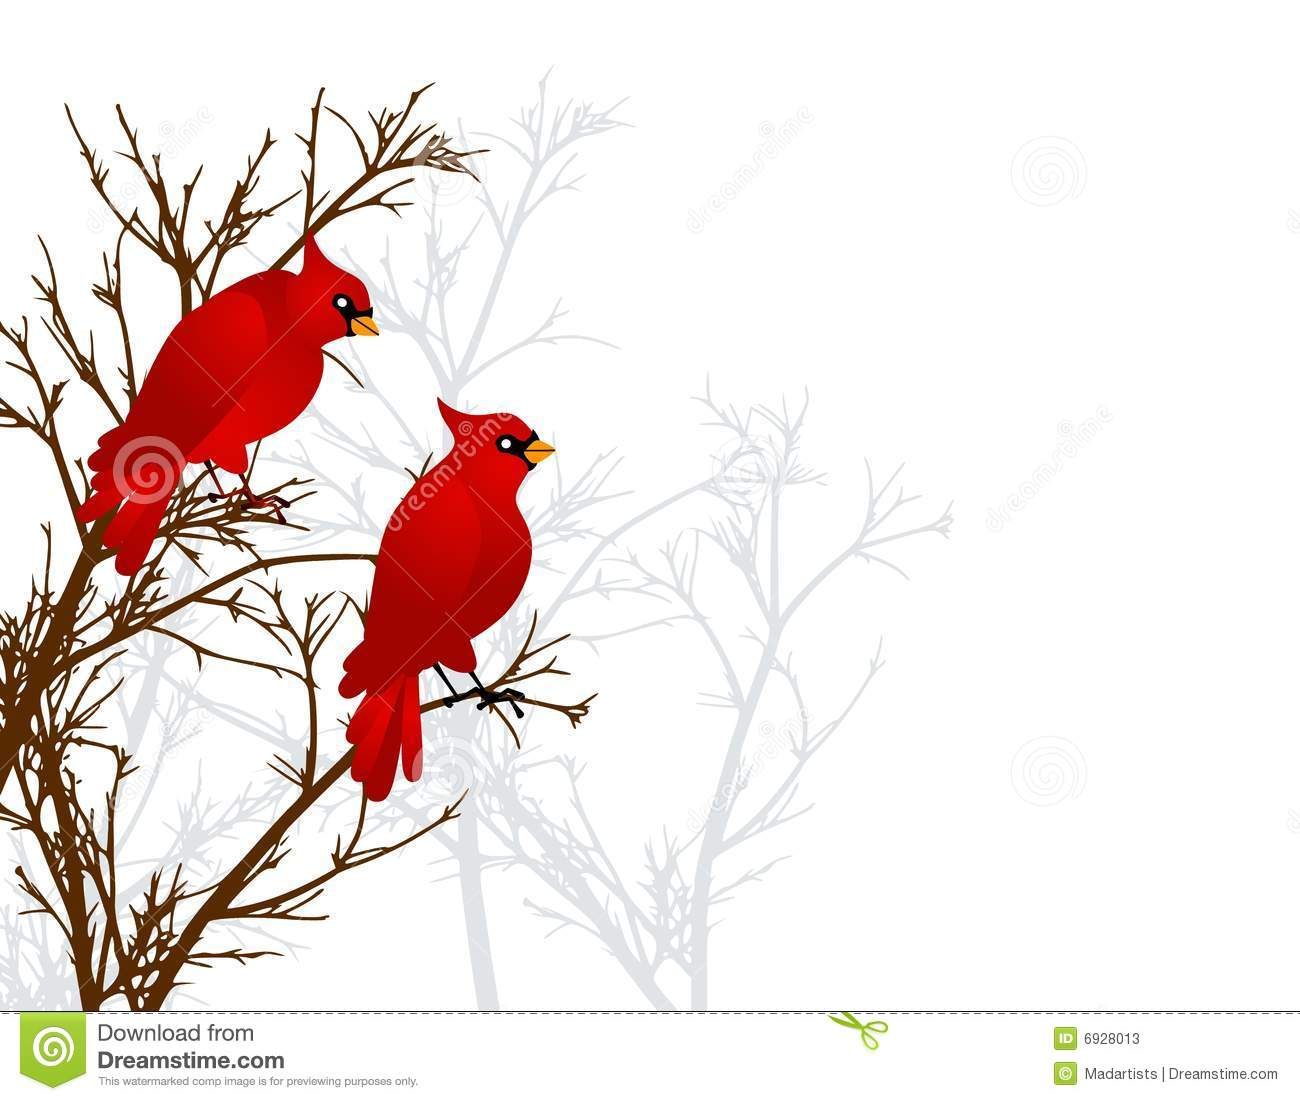 Clip Art Illustration Of 2 Red Cardinal Birds Sitting On A Branch In